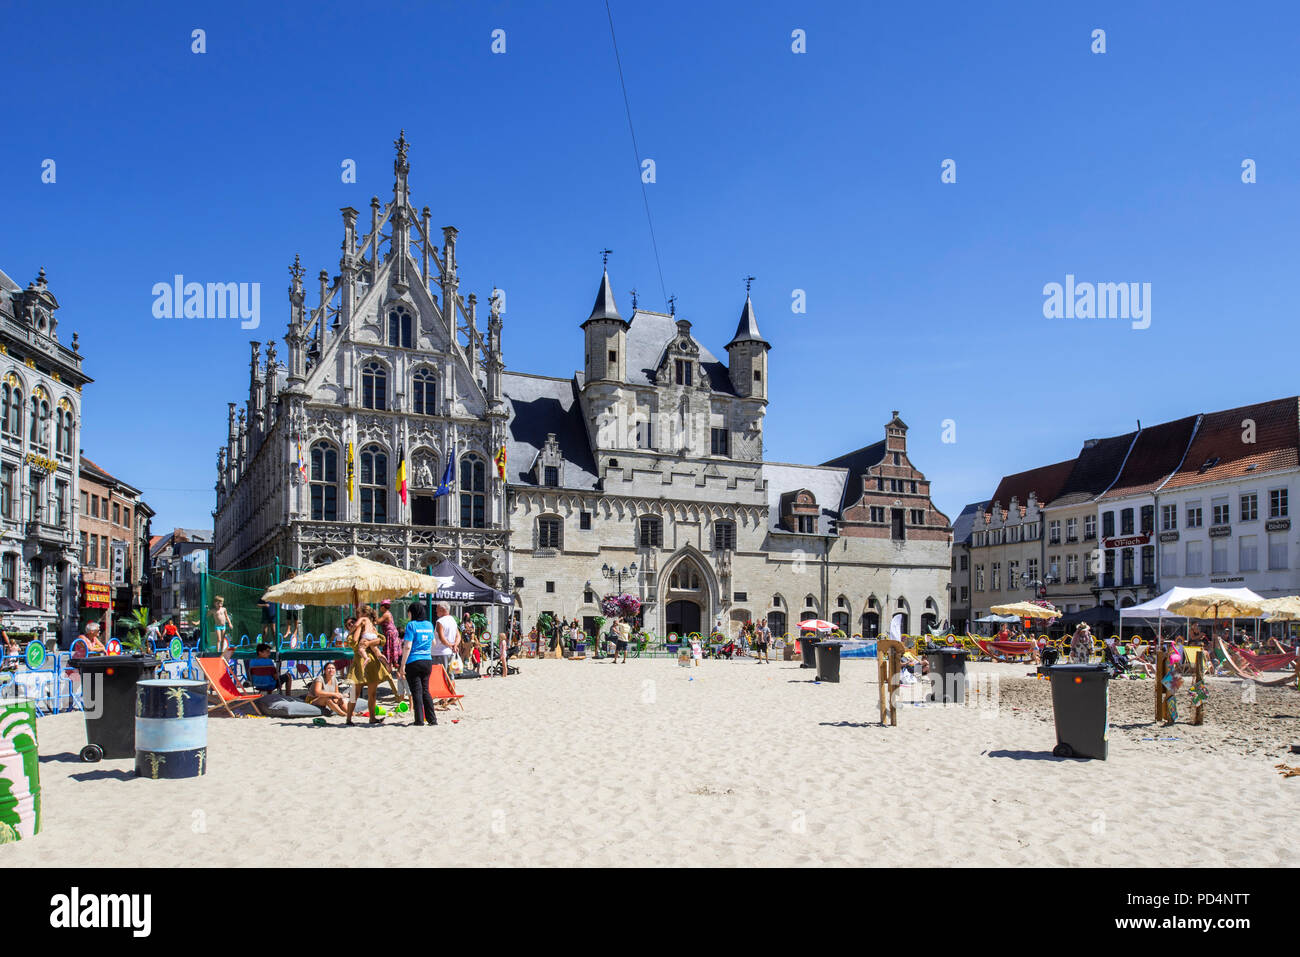 Sandy beach with playground for children on the Market Square / Grote Markt in the city Mechelen / Malines in summer, Antwerp, Flanders, Belgium Stock Photo